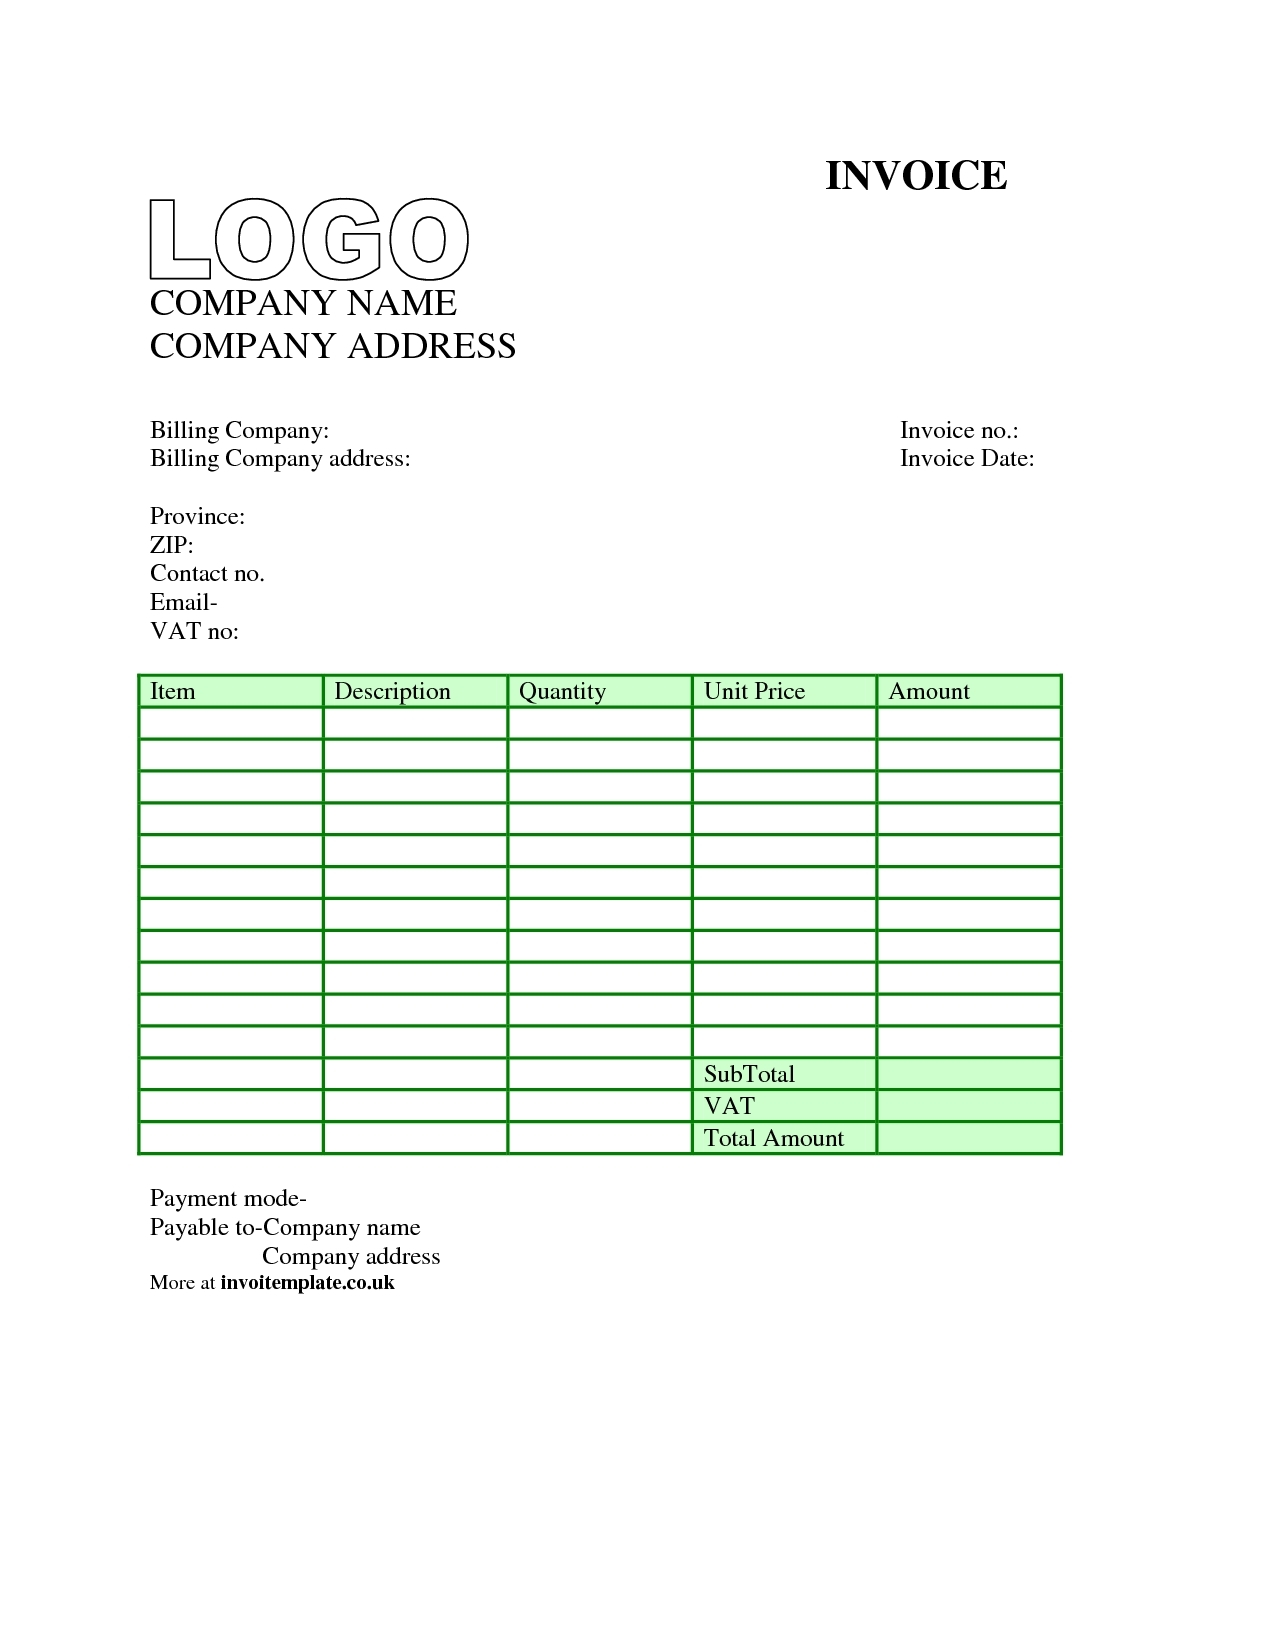 invoice template uk excel invoice template free 2016 uk invoice template excel